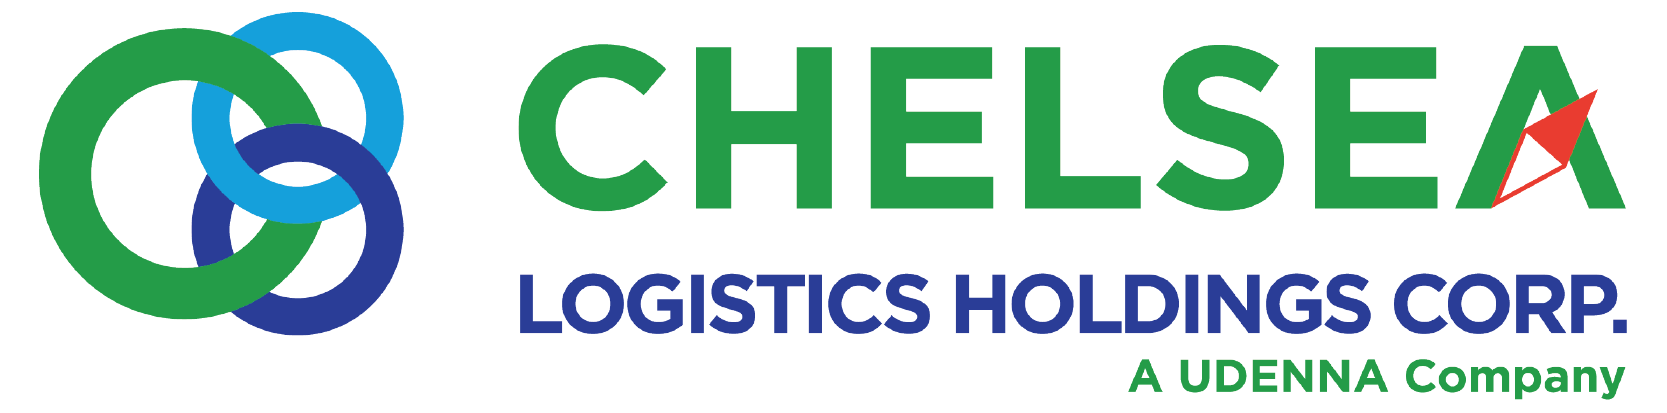 Chelsea Logistics Holdings Corp.